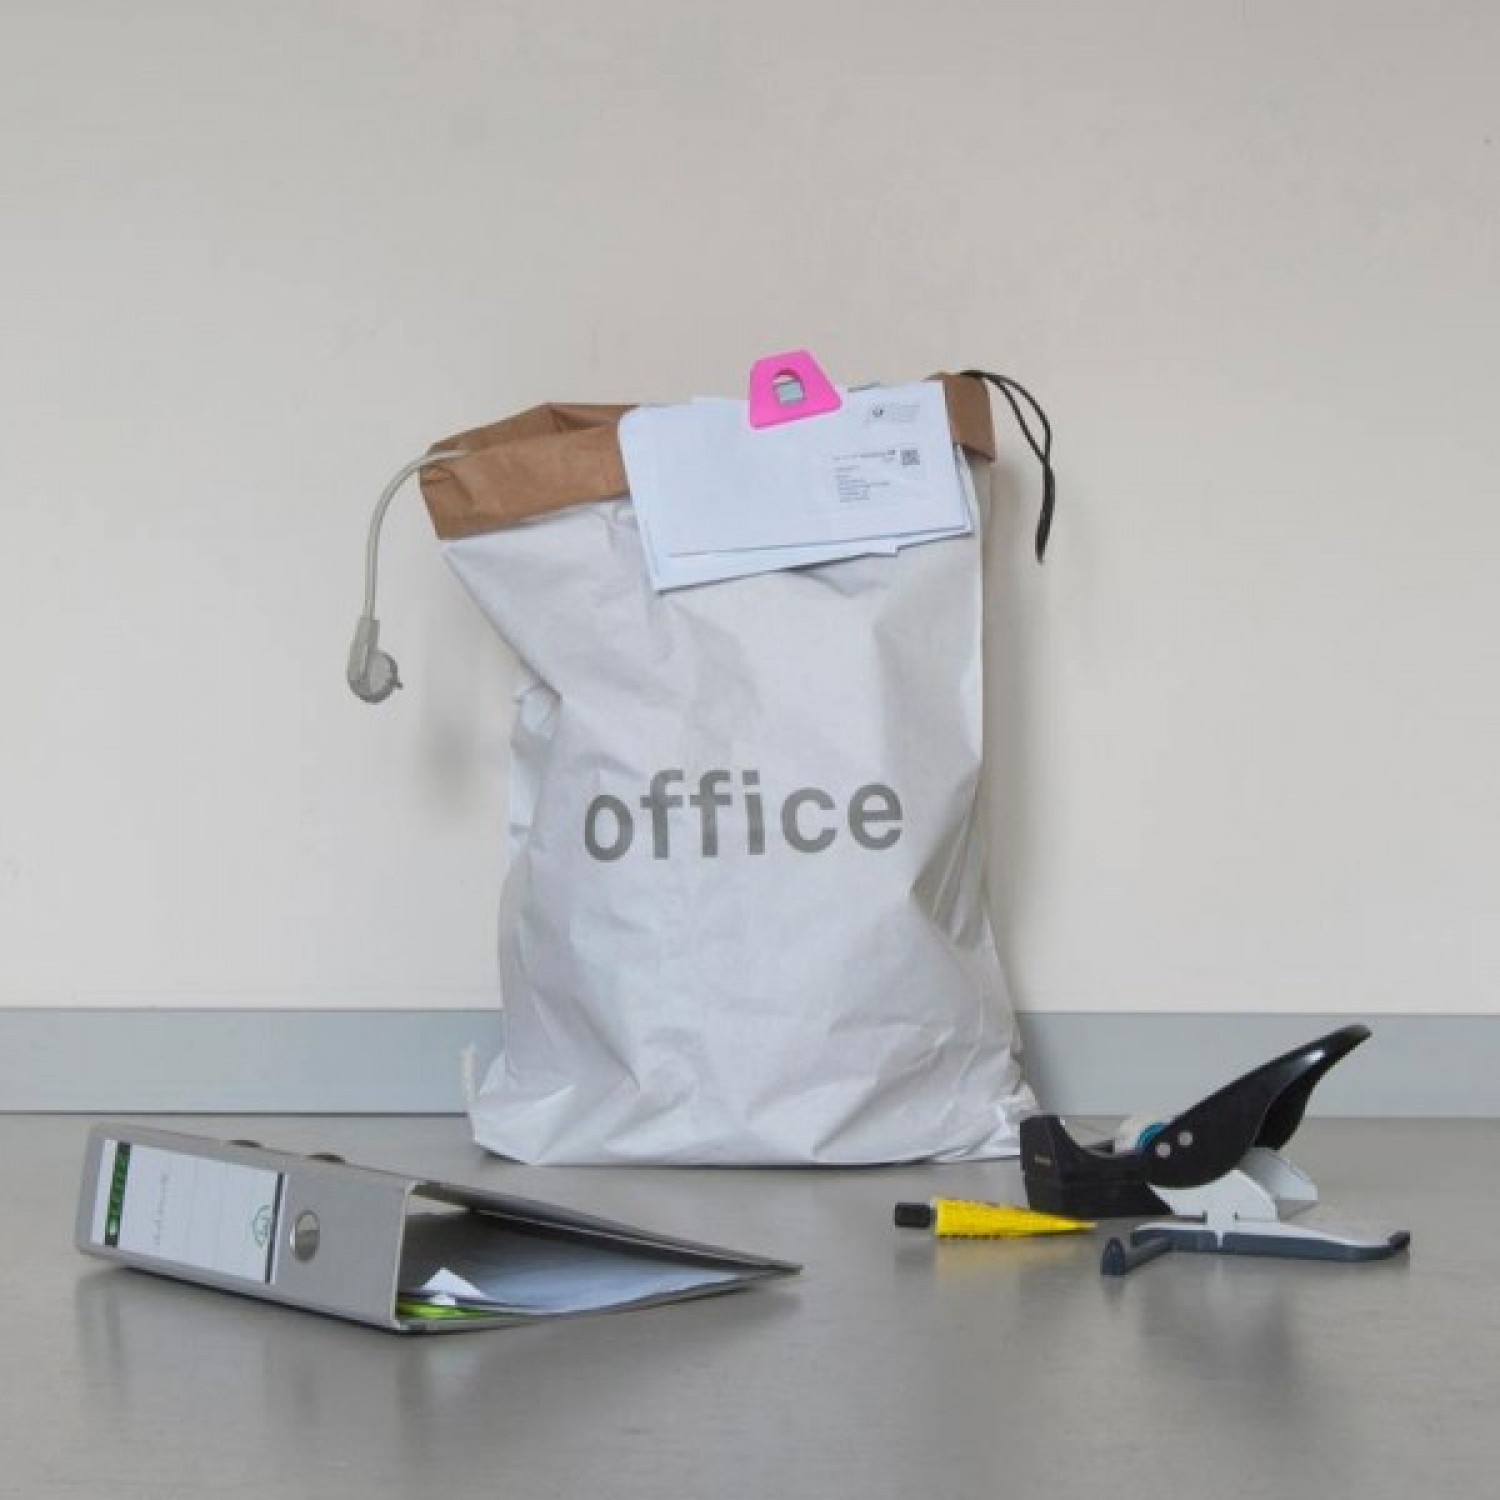 Storage Bag for Office made of recycled paper | kolor